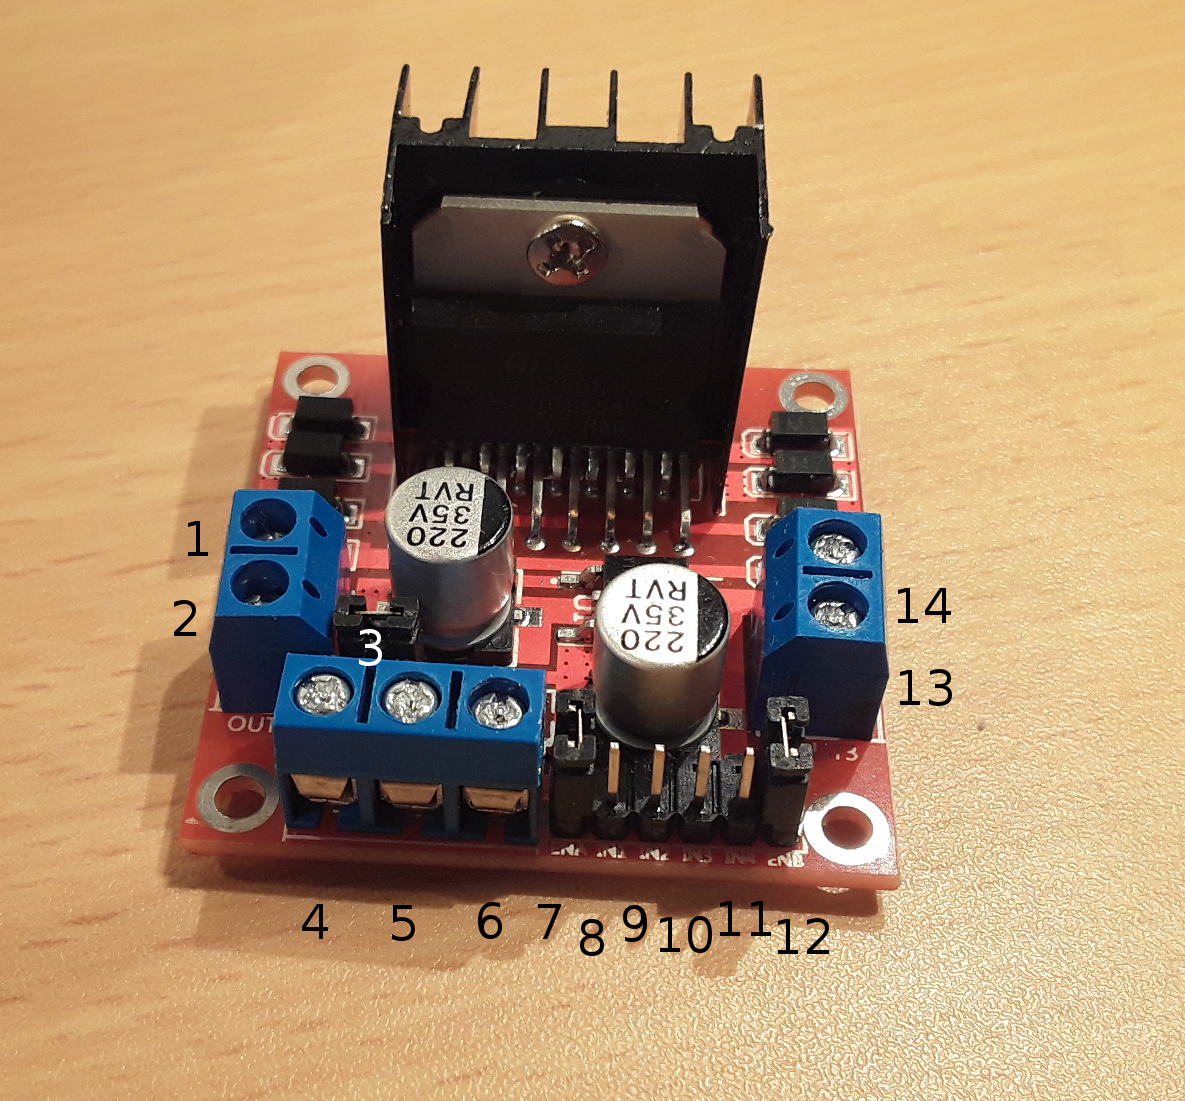 How to control a DC motor with the Arduino Uno and the L298N